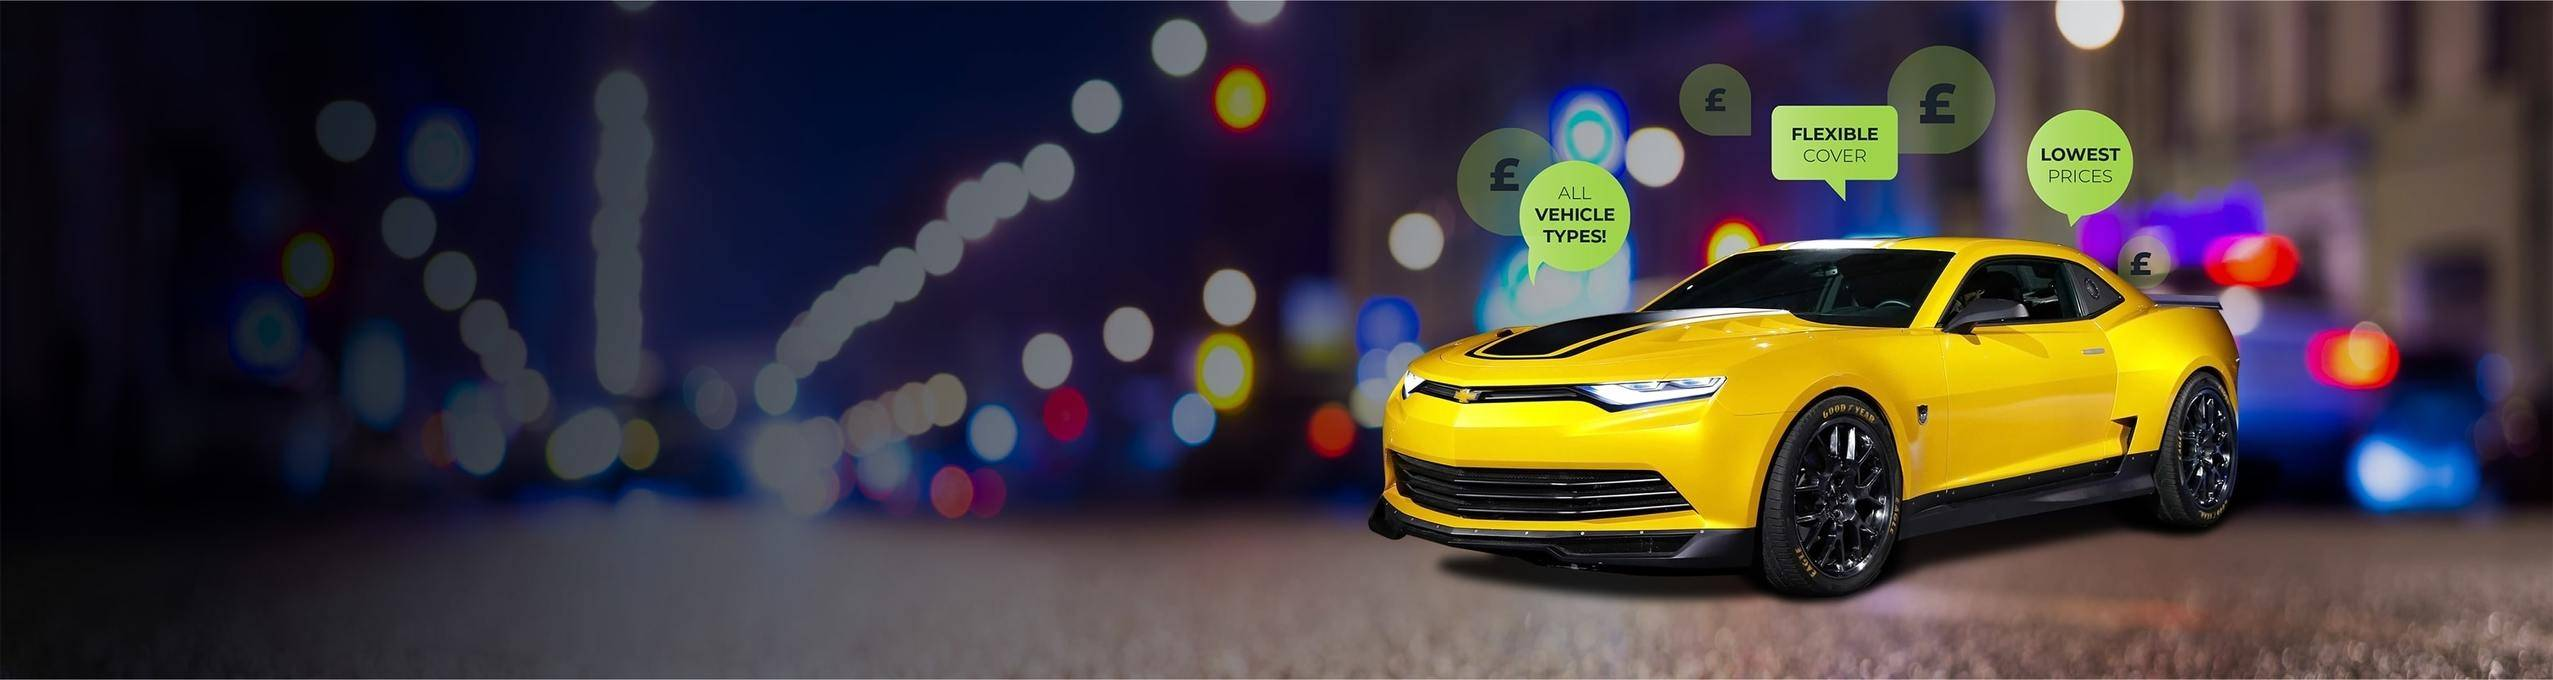 Import car with comprehensive car insurance